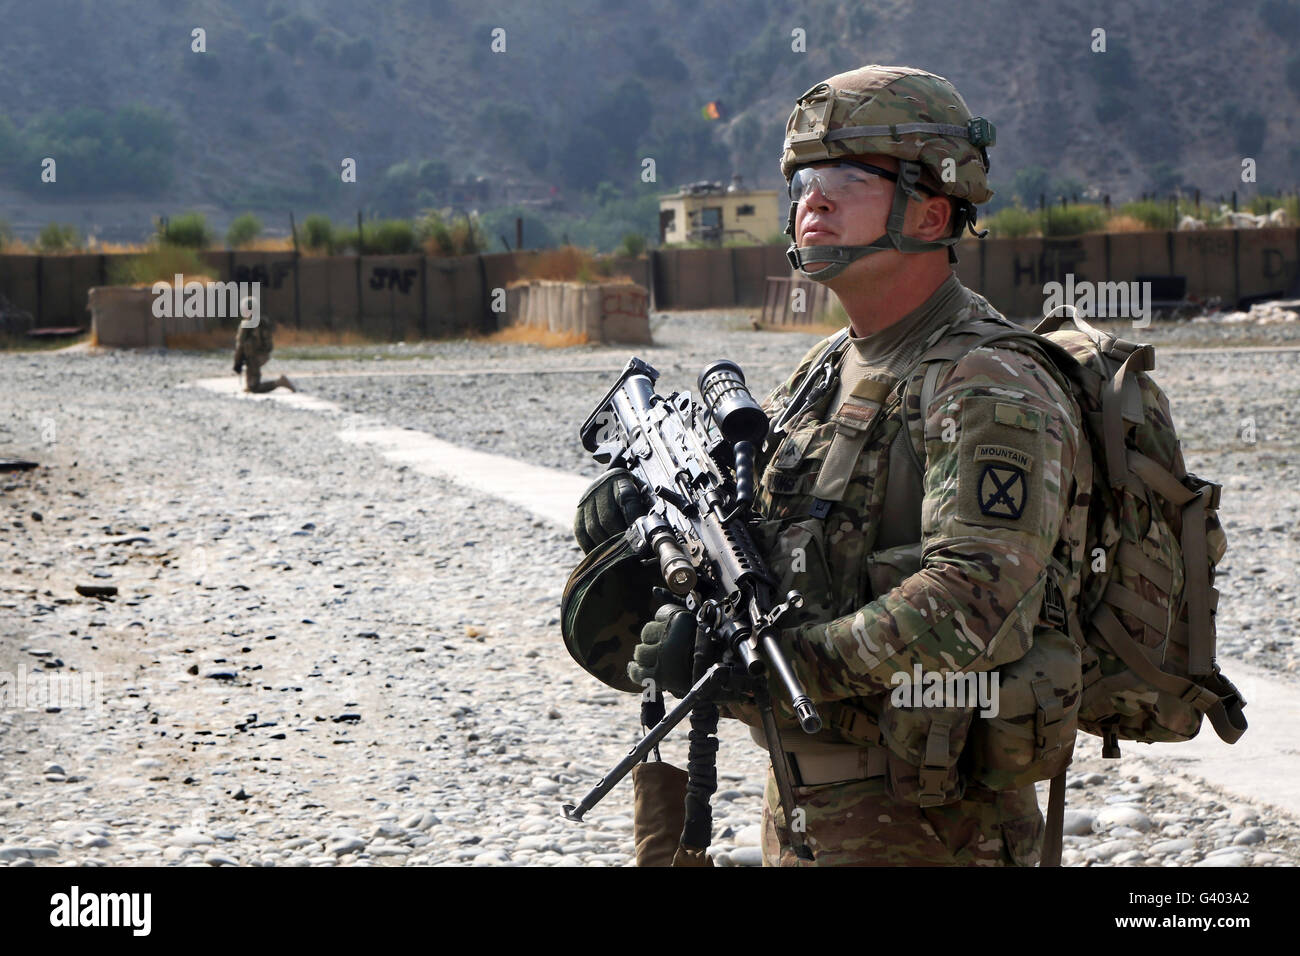 U.S. Army soldier provides overwatch at an airfield in Afghanistan. - Stock Image